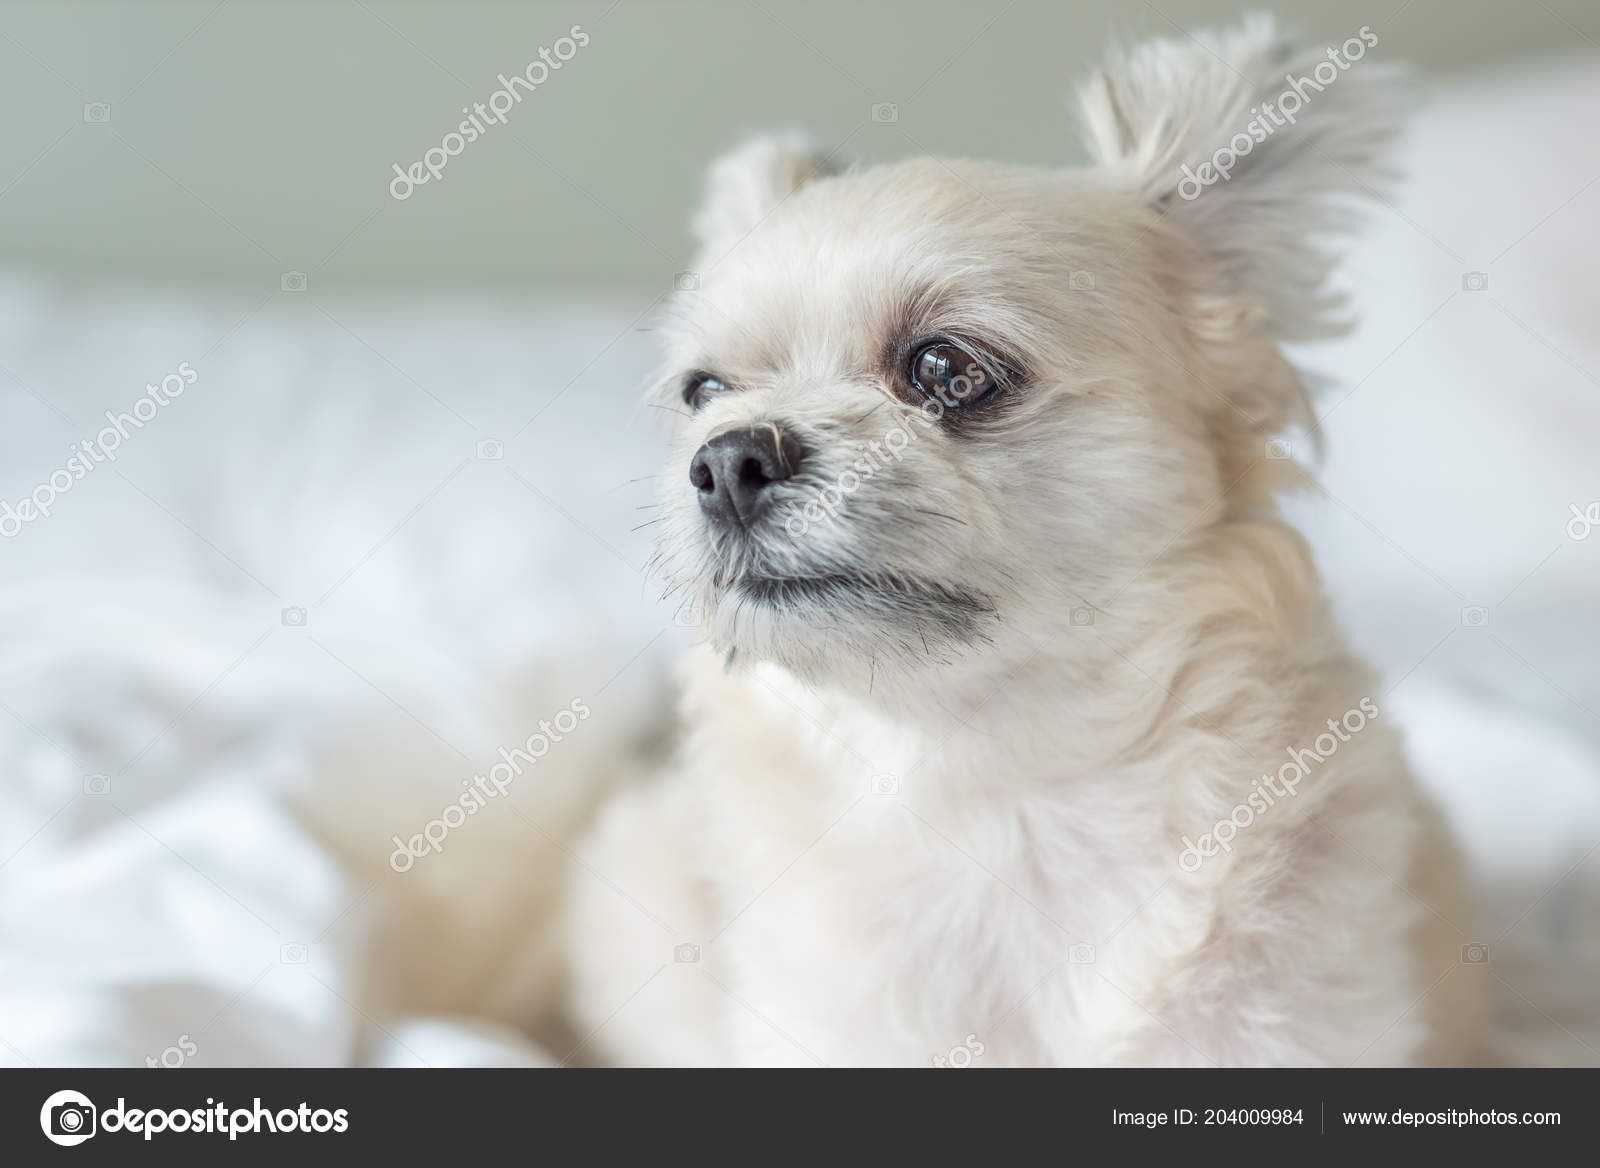 63+ Shih Tzu Cross With Poodle For Sale in 2020 Dog